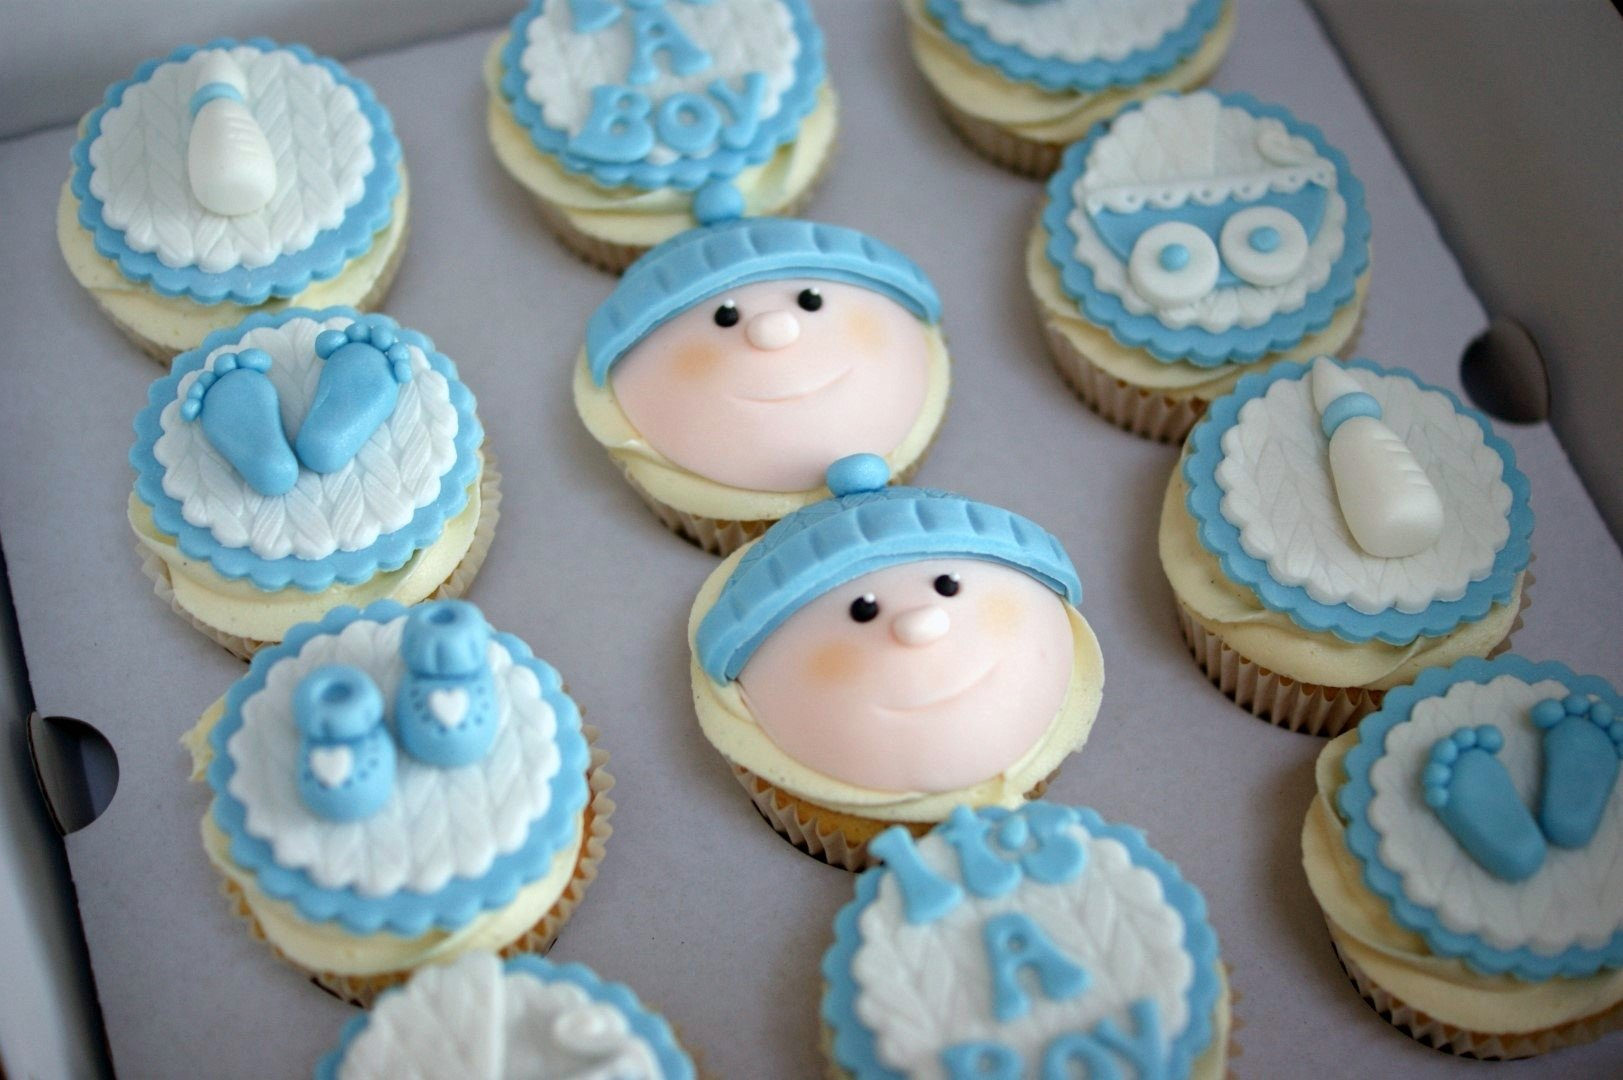 10 Famous Boy Baby Shower Cakes Ideas shockingy shower cake ideas for boy sports easy cupcakes sheet 2020